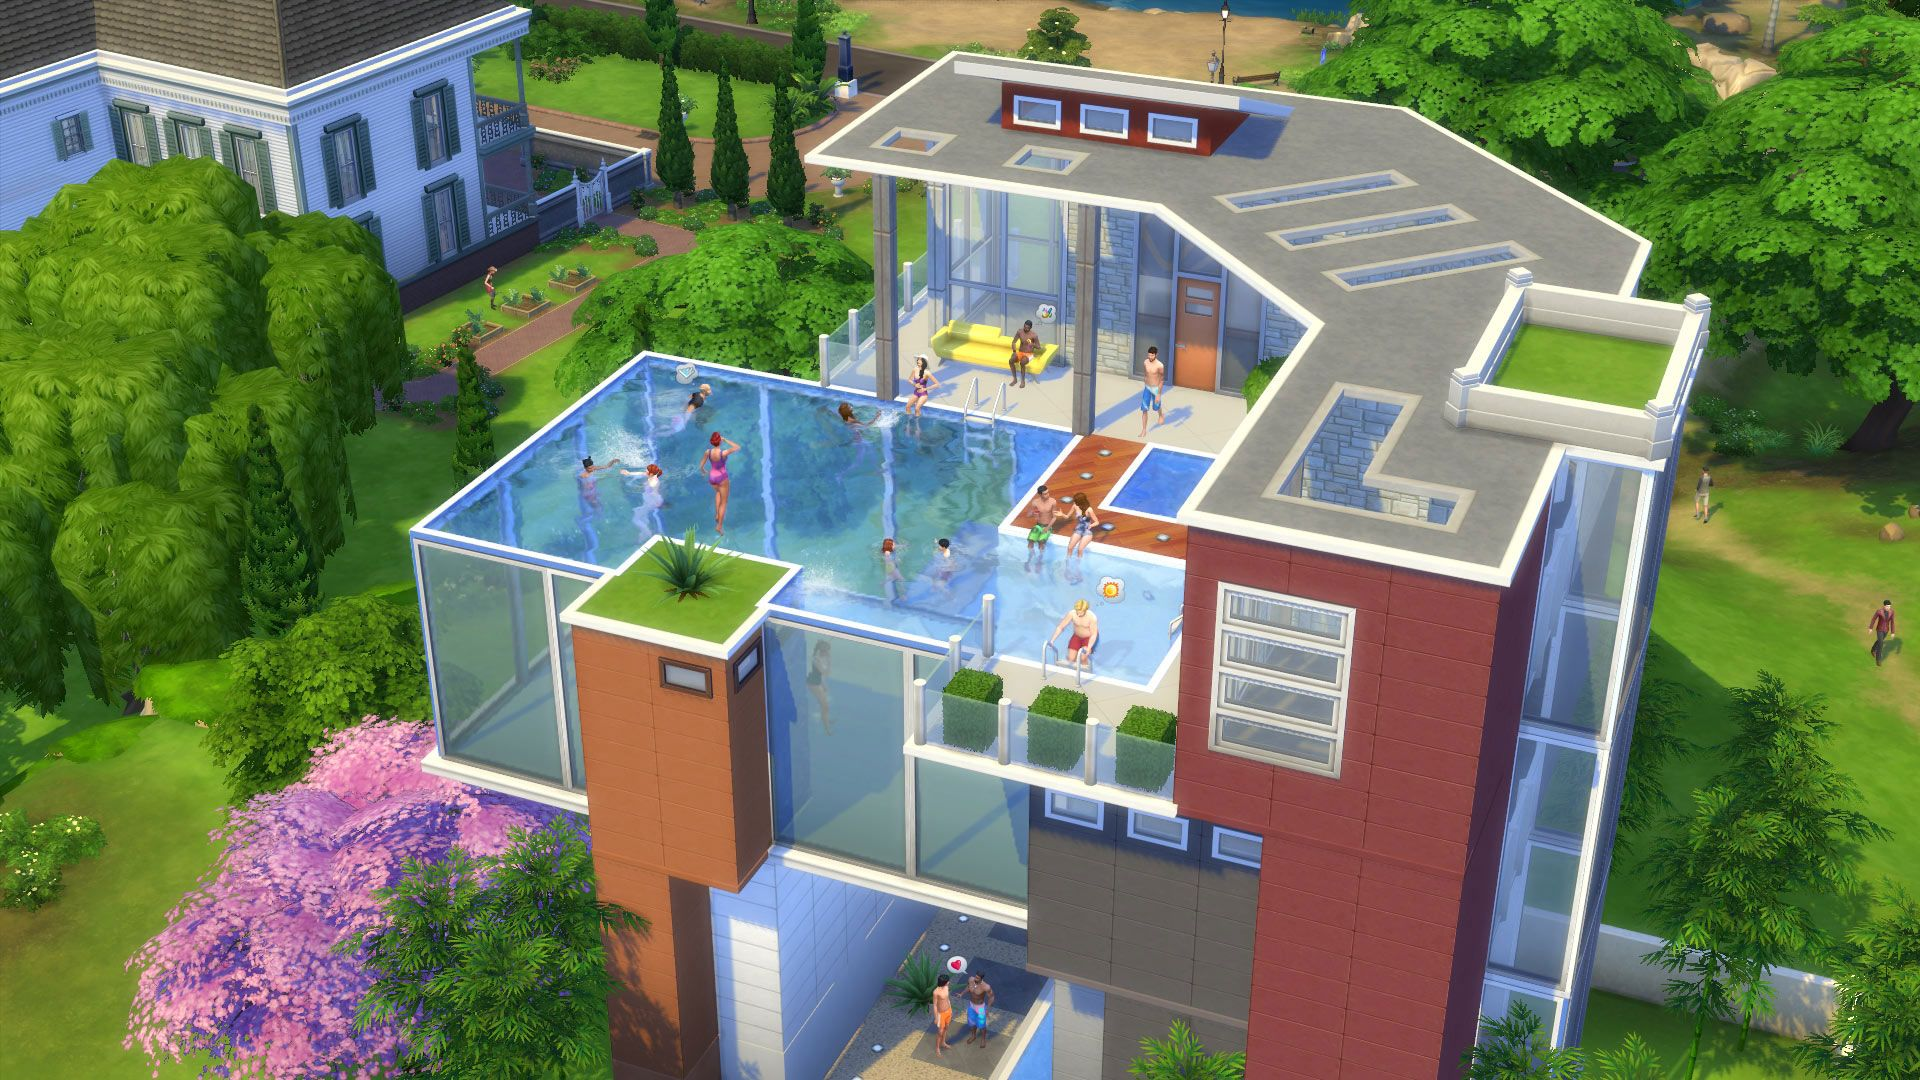 the sims 4 rooftop pools - Sims 4 Home Design